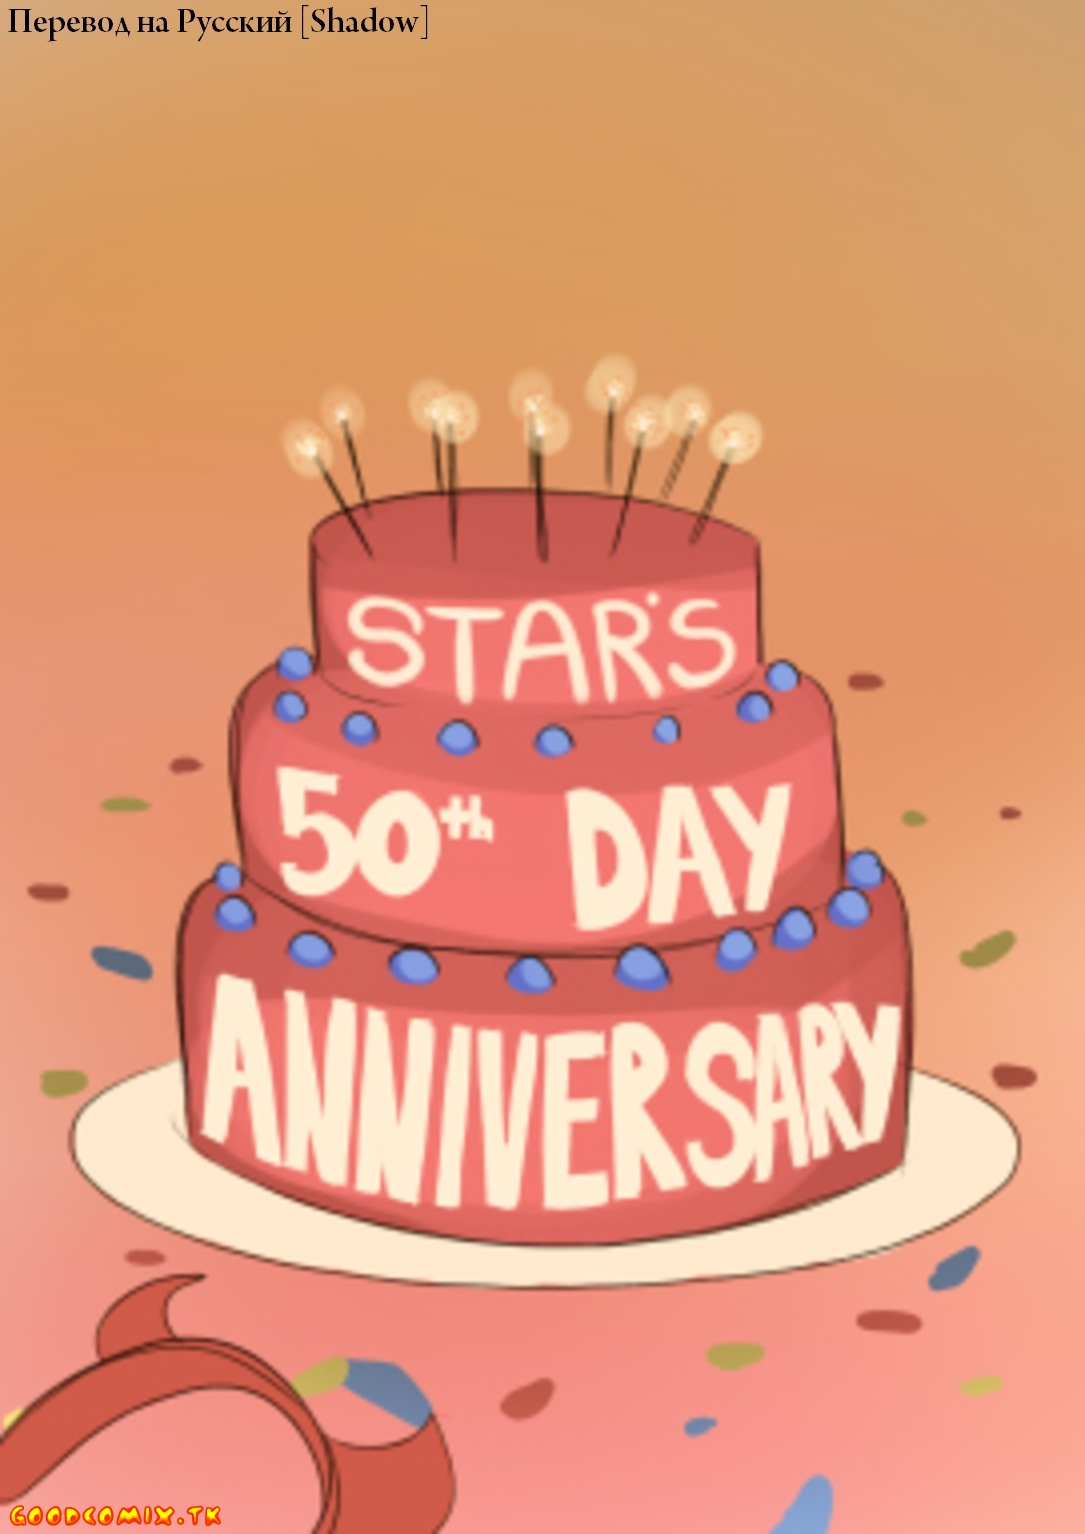 Goodcomix.tk Star Vs The Forces Of Evil - [Polyle] - Star's 50th Day Anniversary - 50-тый День Годовщины Звездочки